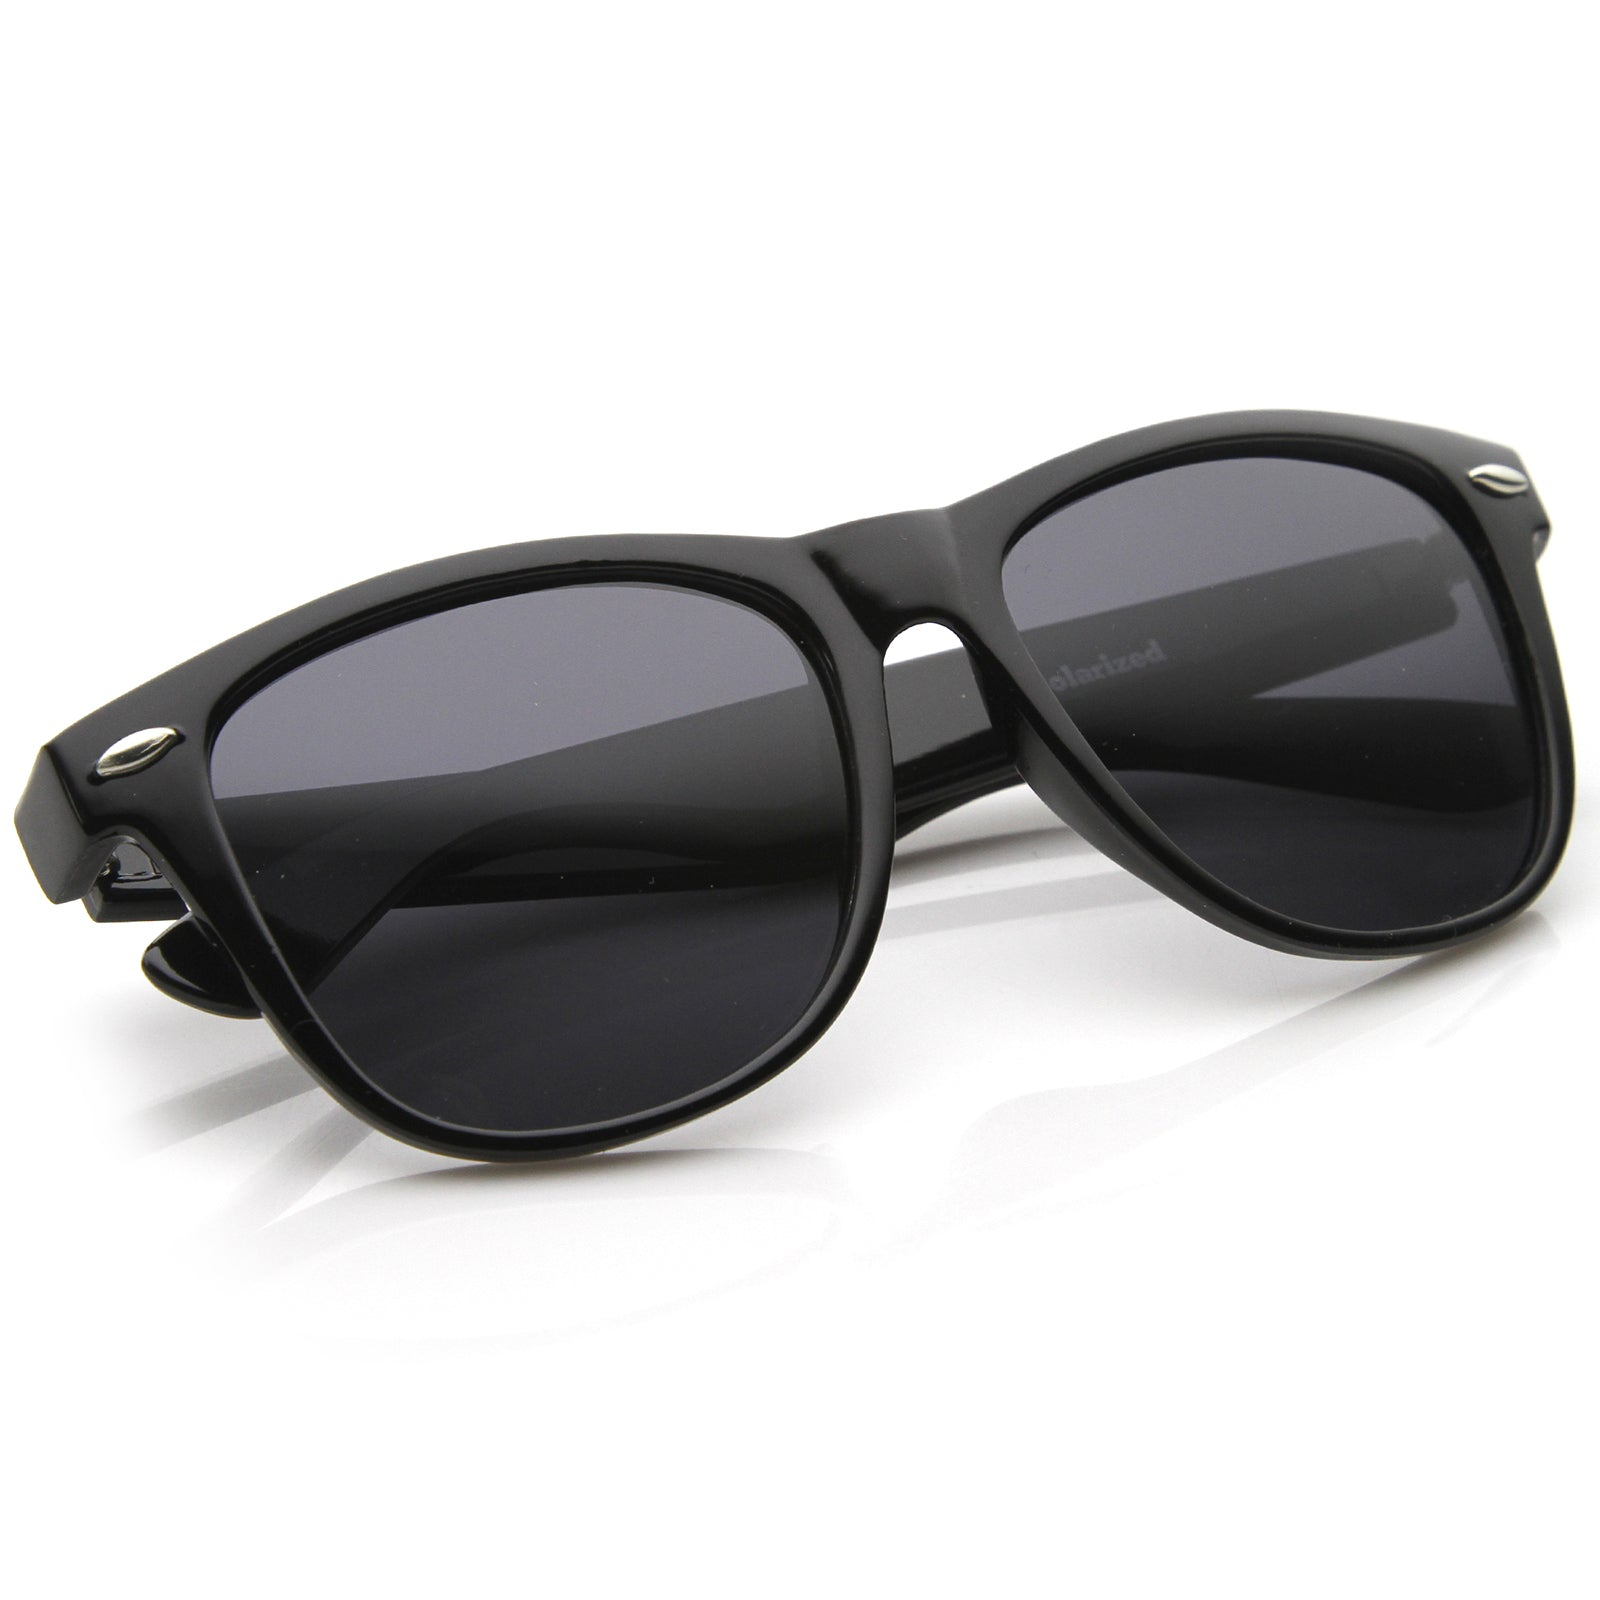 Large Oversize Classic Dark Tinted Lens Horn Rimmed Sunglasses 55mm - sunglass.la - 4